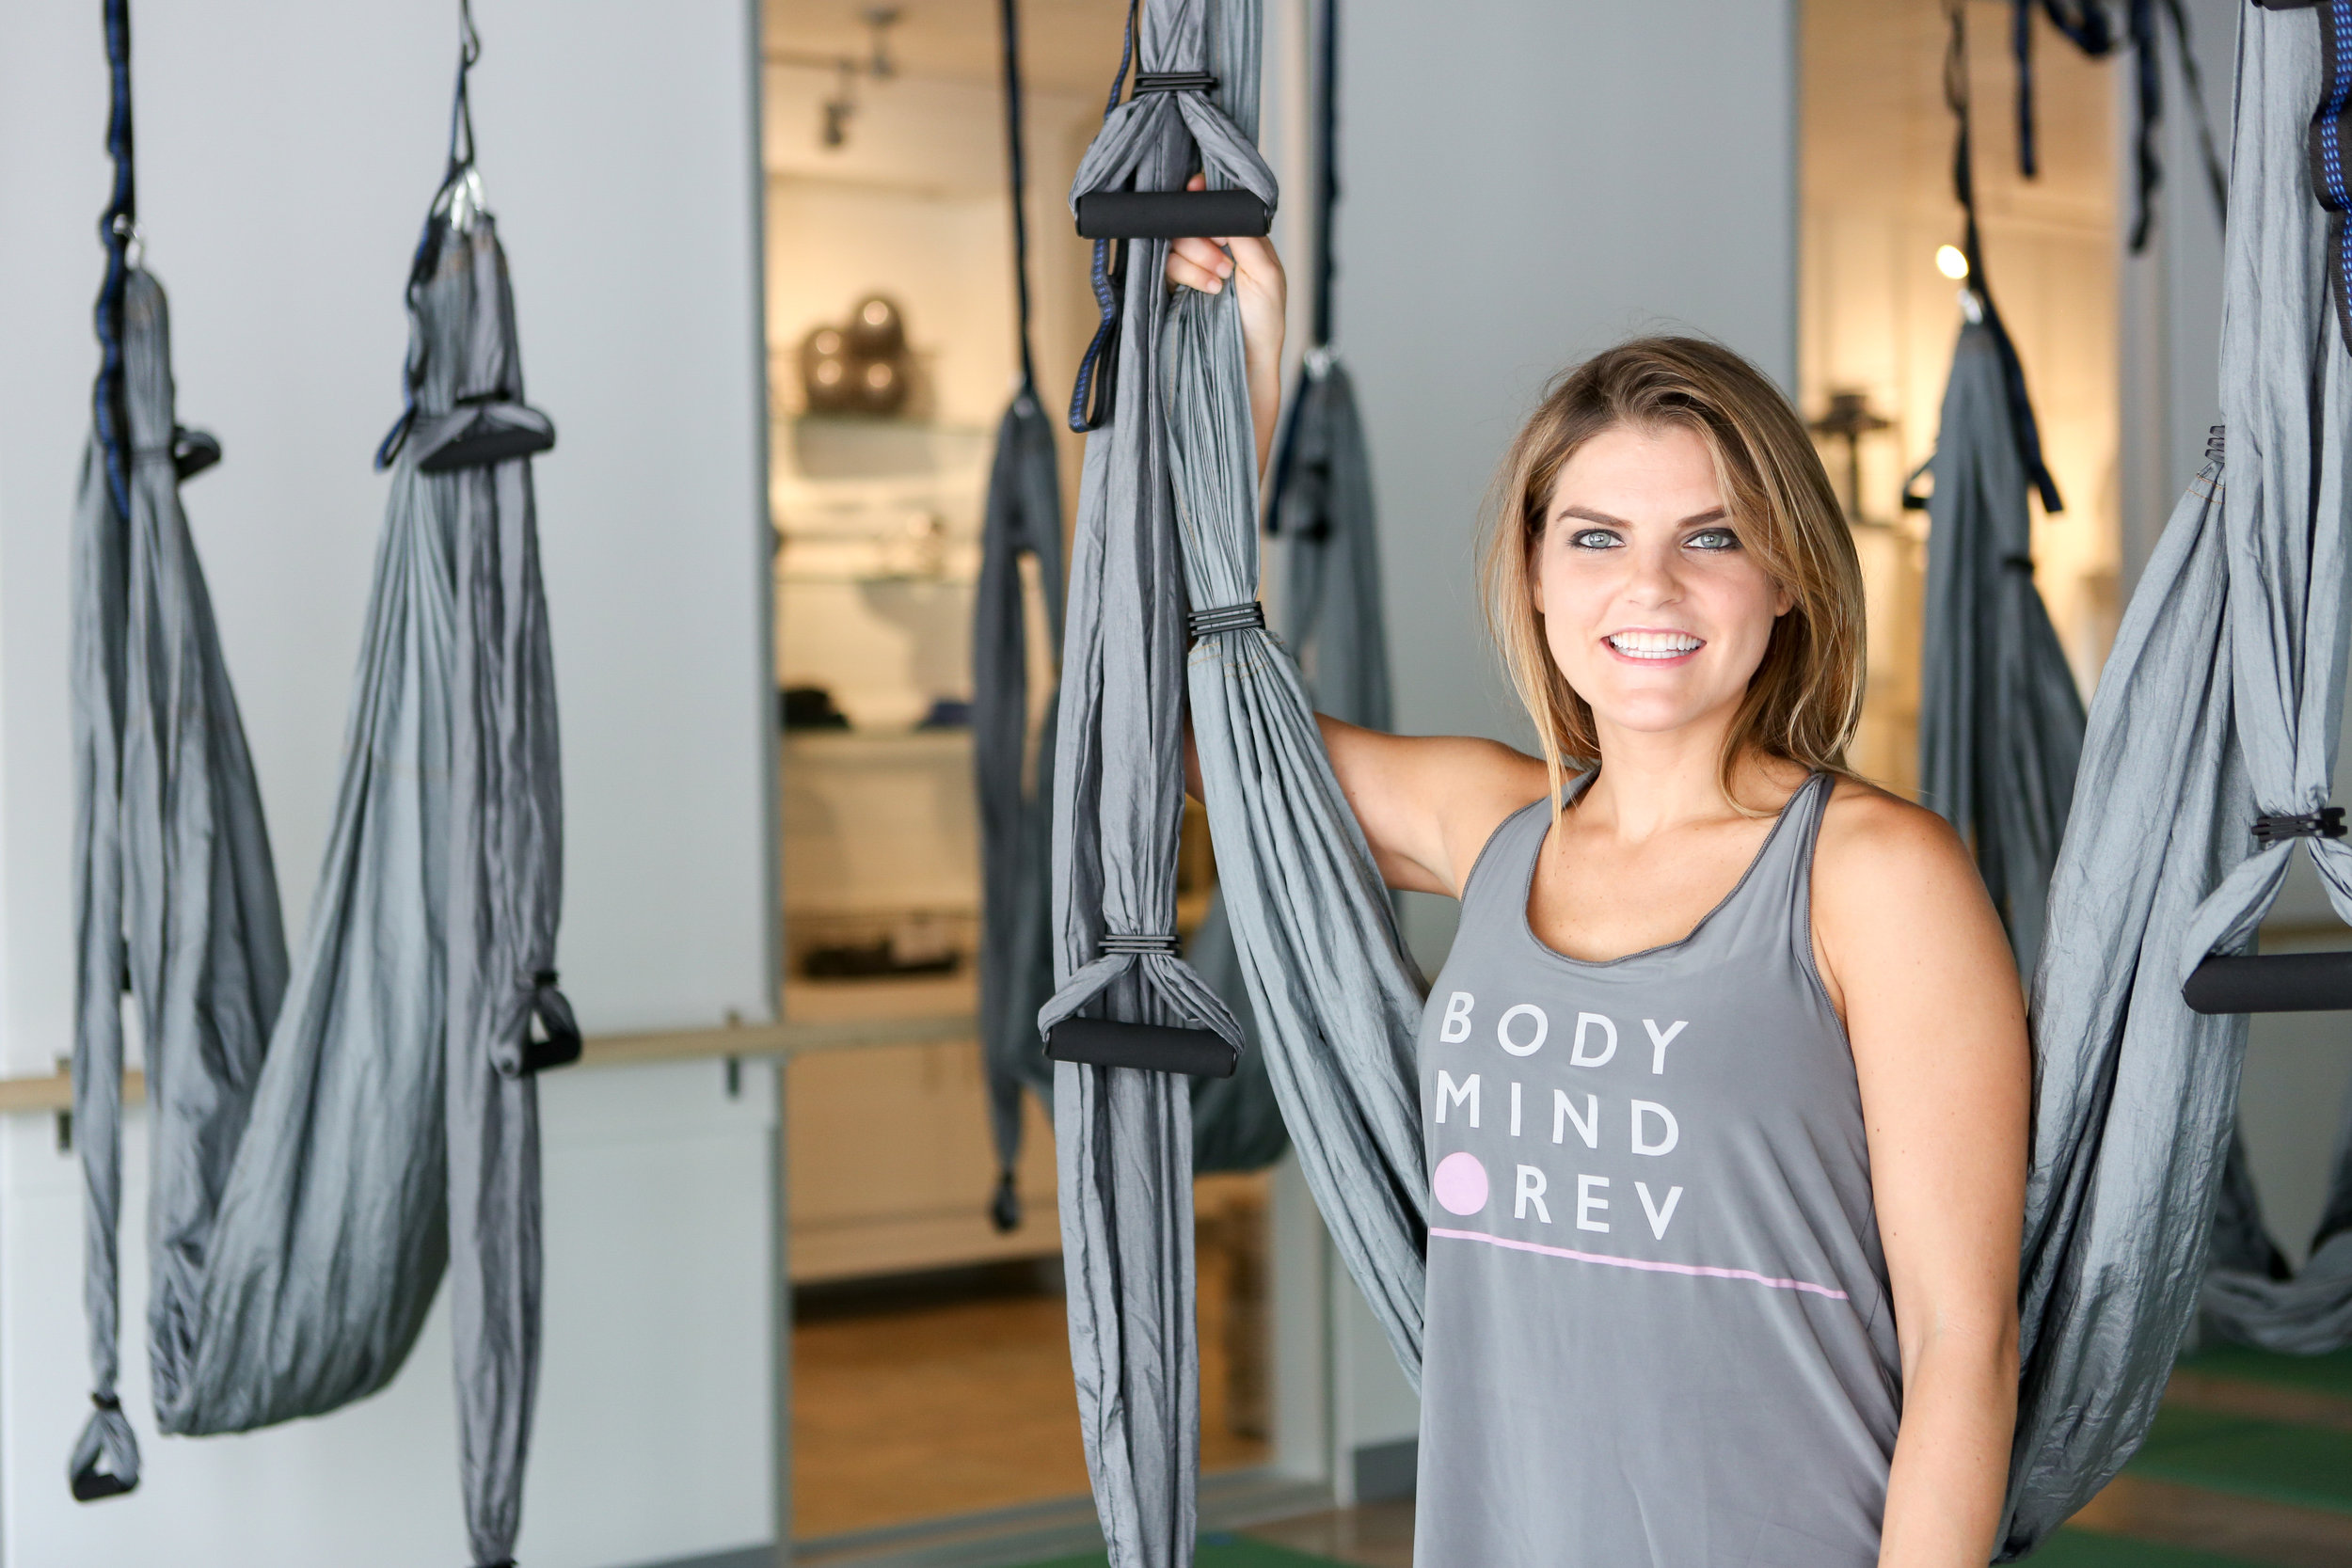 Jessica Smithgall, Owner of DEFINE body & mind